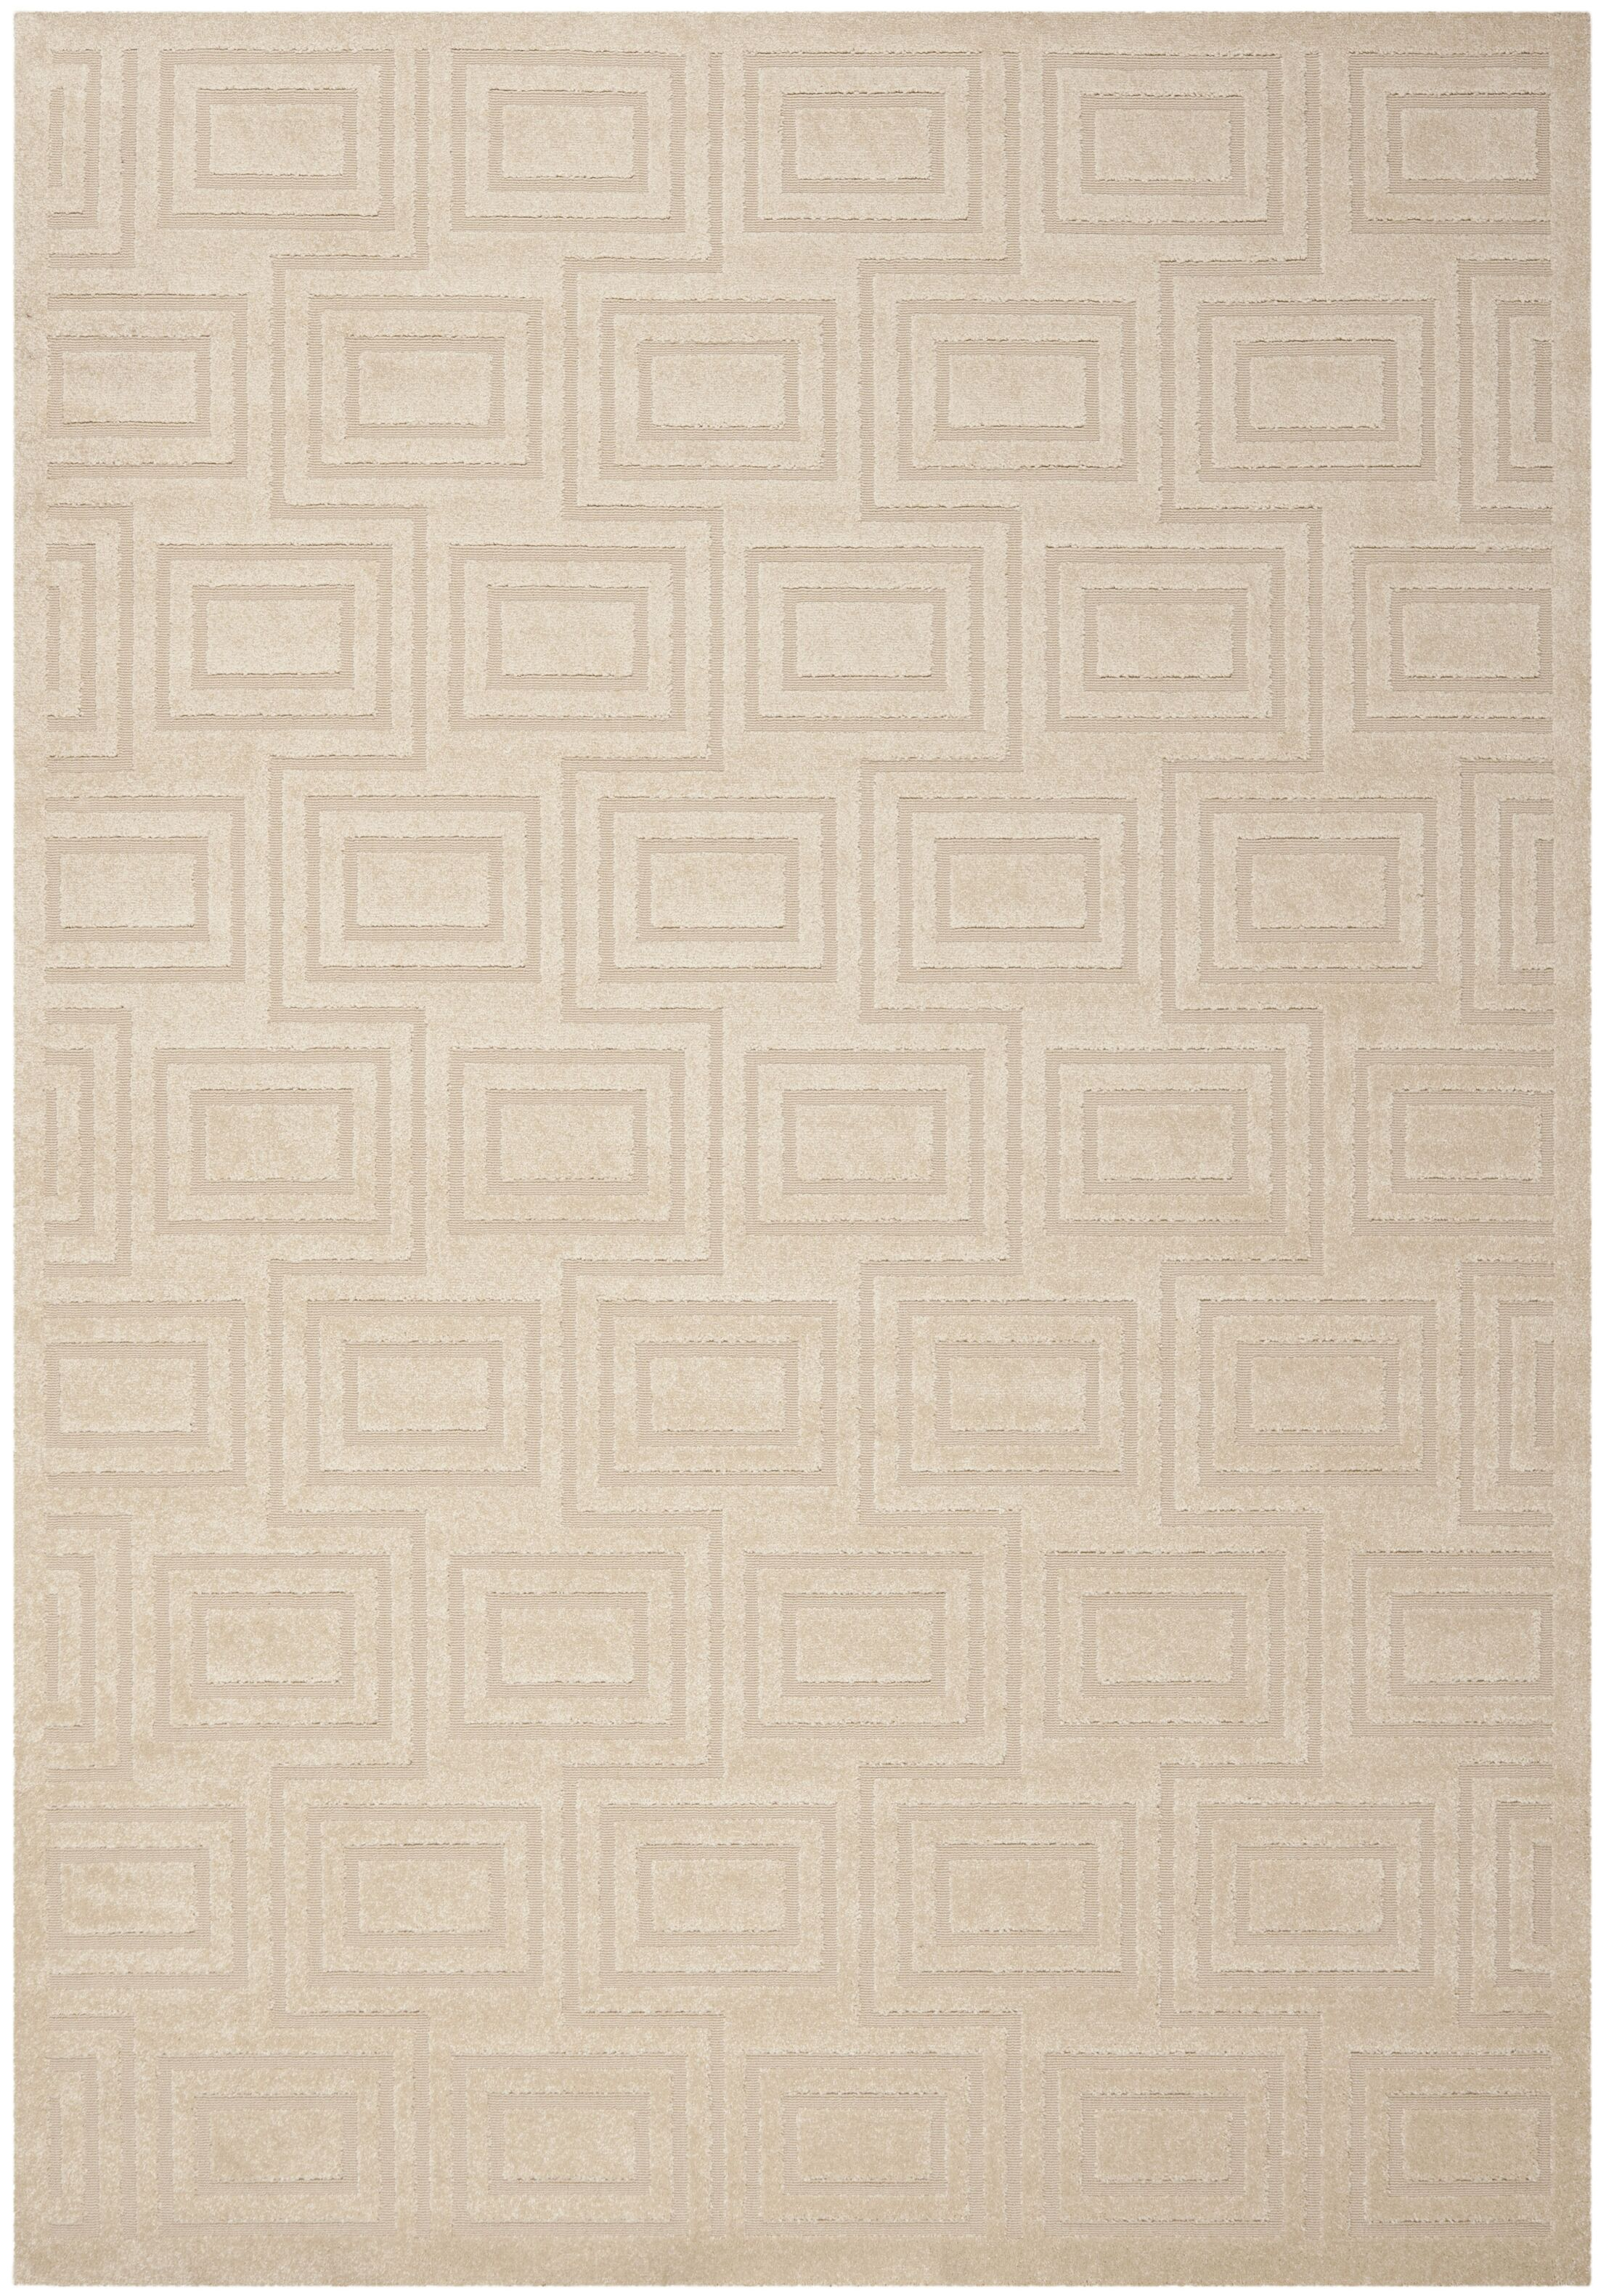 York Brown/Tan Area Rug Rug Size: Rectangle 8' x 10'